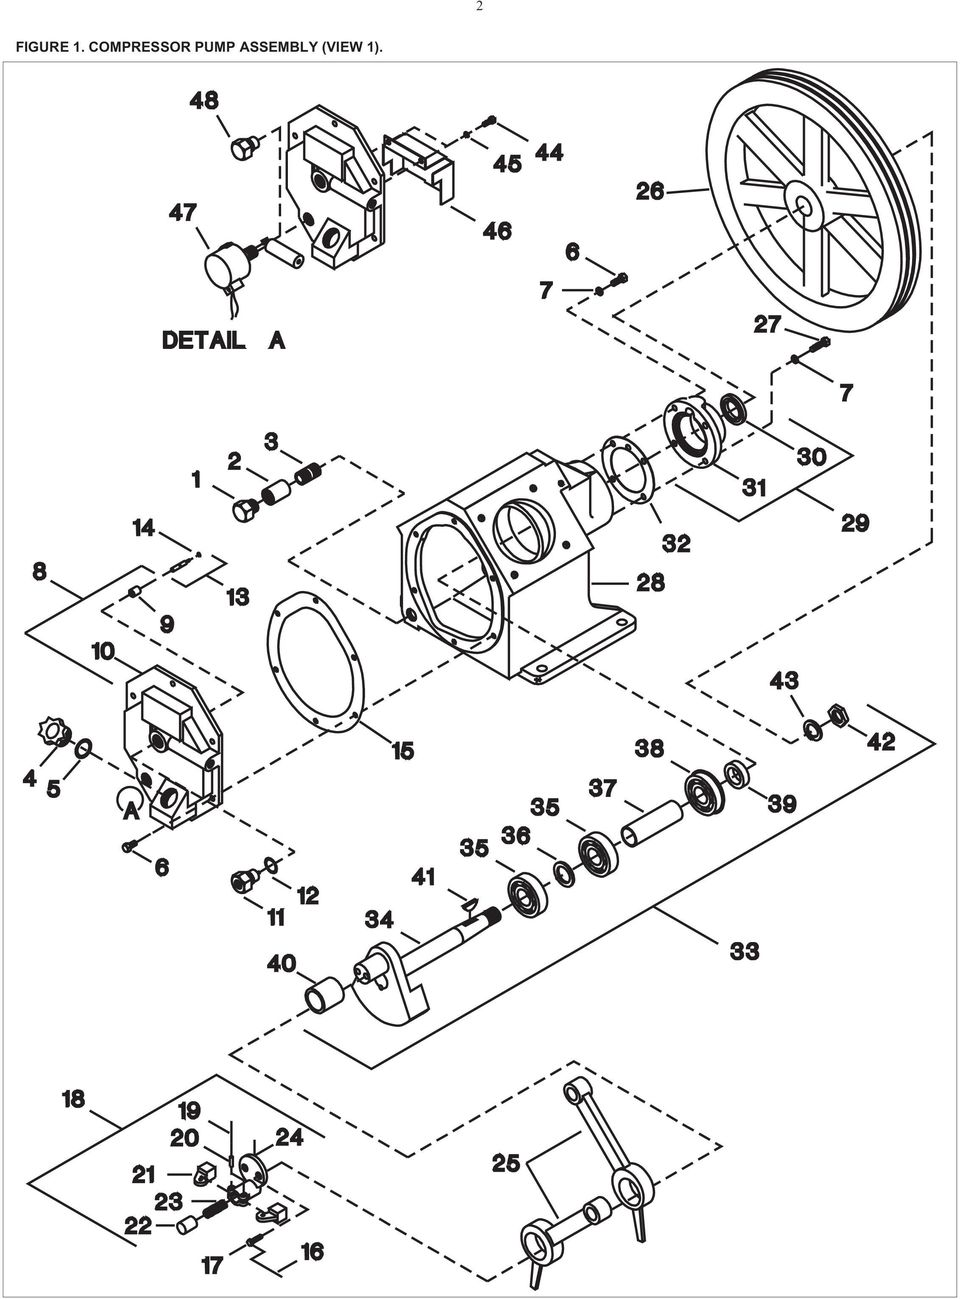 hight resolution of part description qty spares no no plug pipe hex head 1 2 coupling pipe 1 2 nipple pipe plug oil fill o ring oil fill plug capscrew